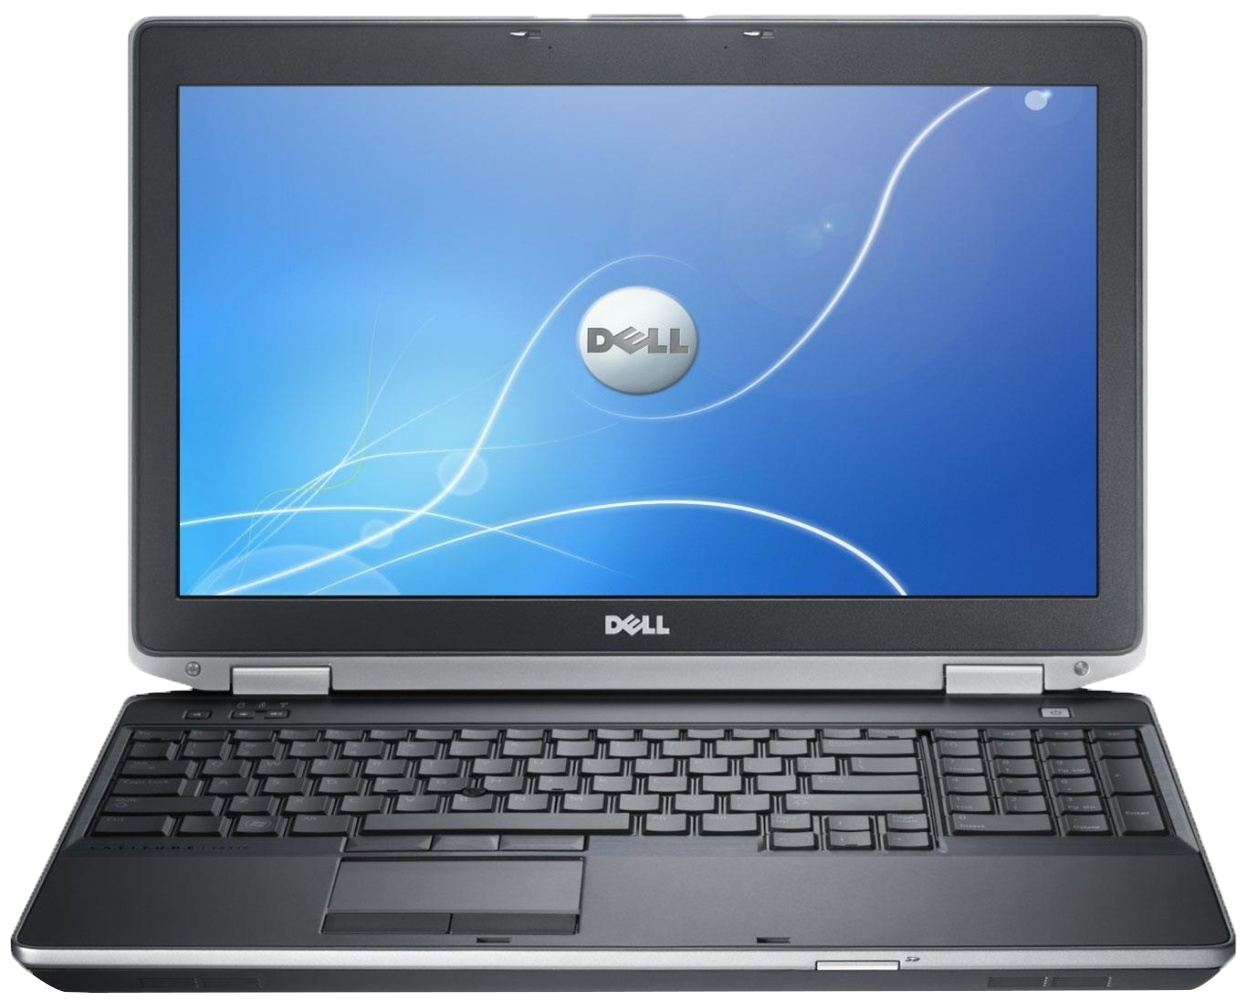 Dell latitude e6540 fra dell fra refurb